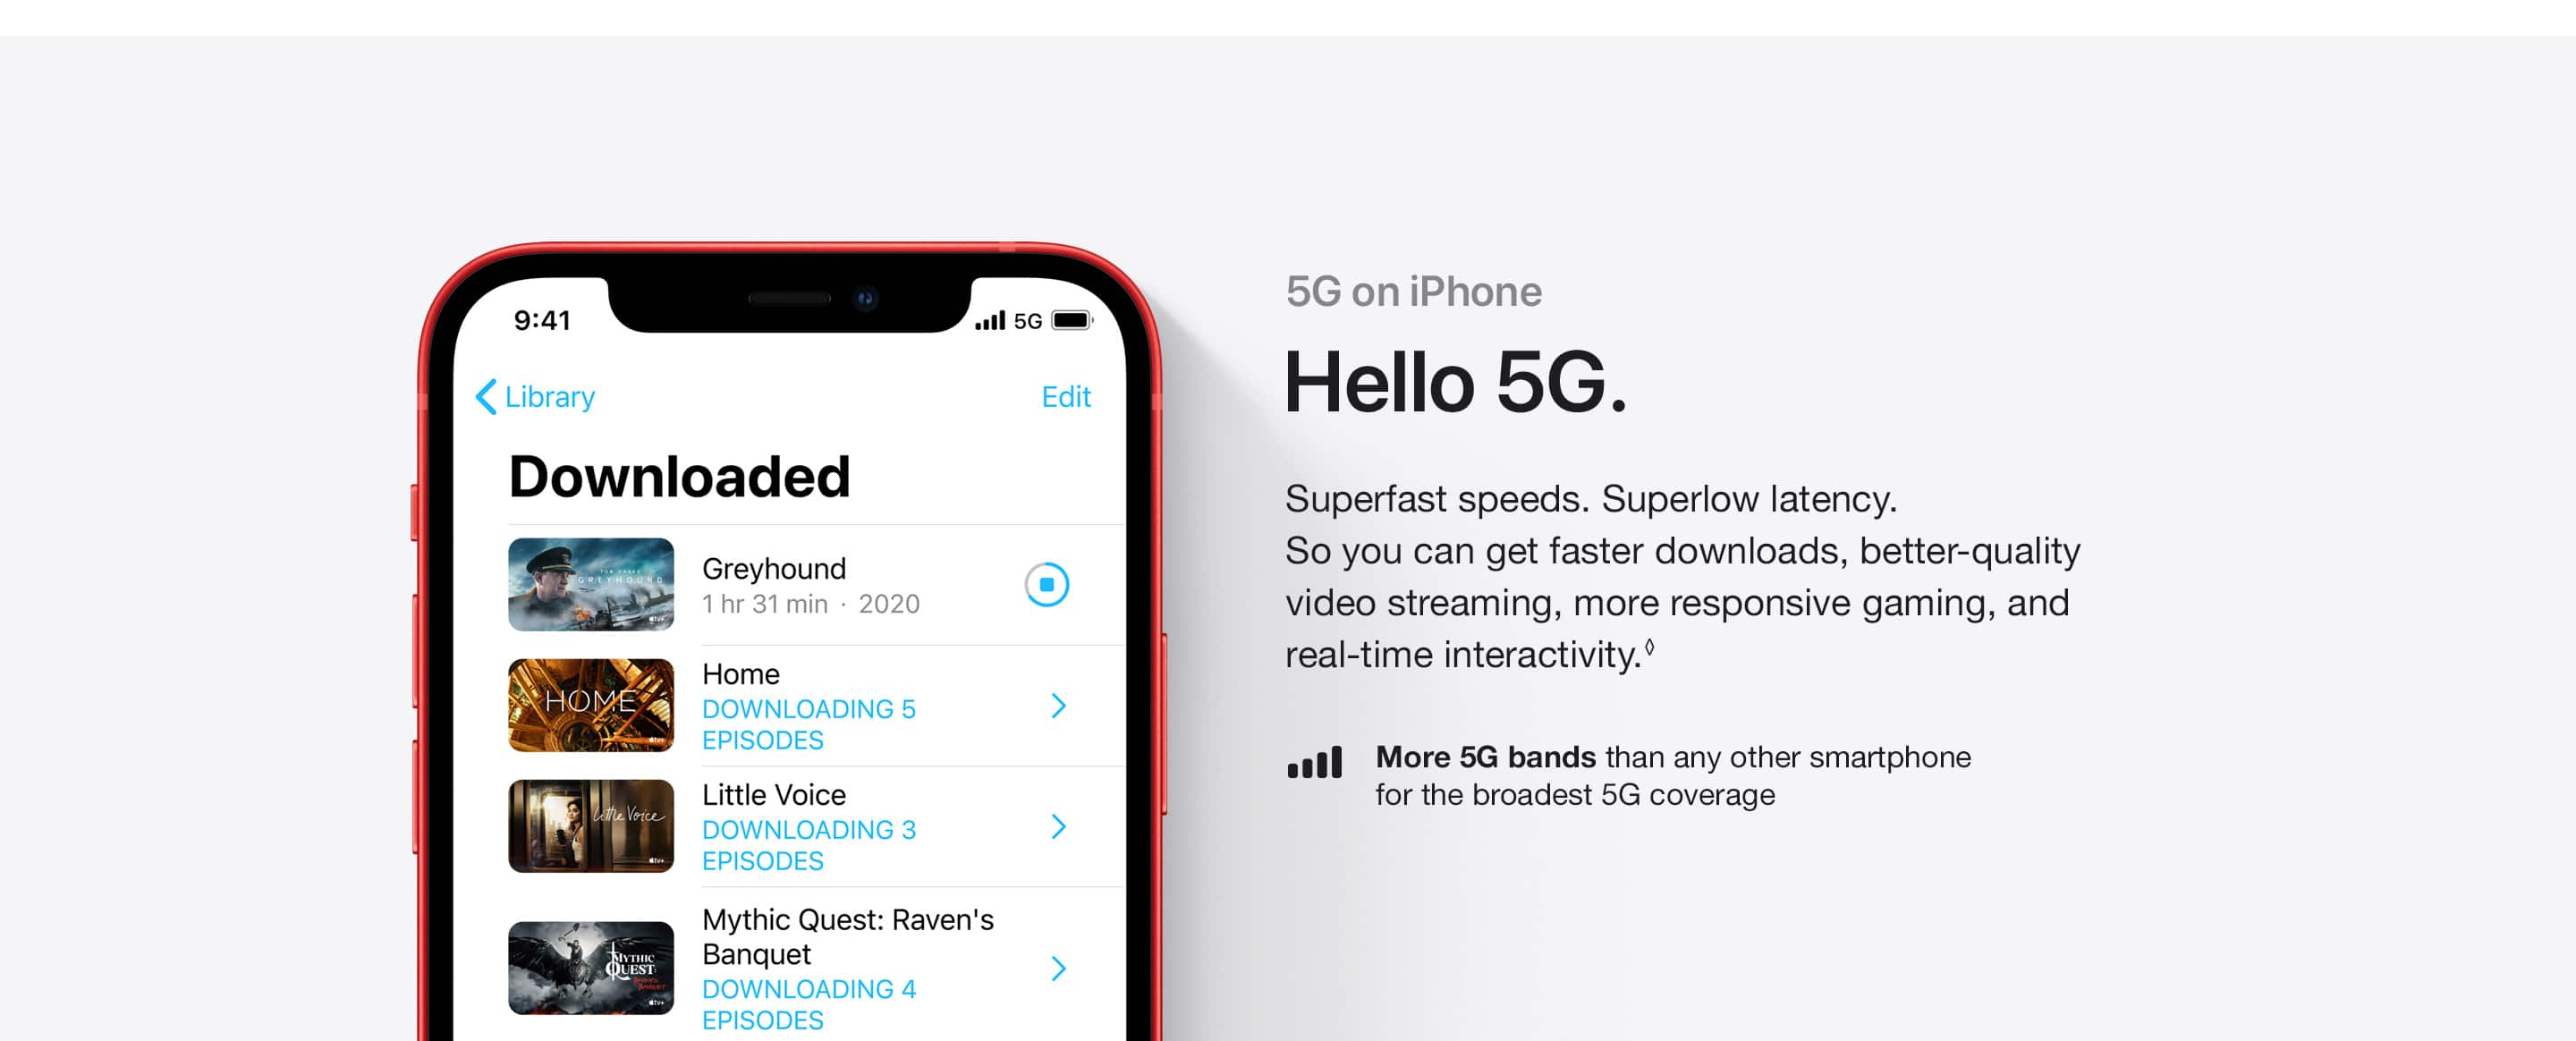 5G on iPhone. Hello 5G. Superfast speeds. Superlow latency. So you can get faster downloads, better-quality video streaming, more responsive gaming, and real-time interactivity.(♢) More 5G bands than any other smartphone for broadest 5G coverage